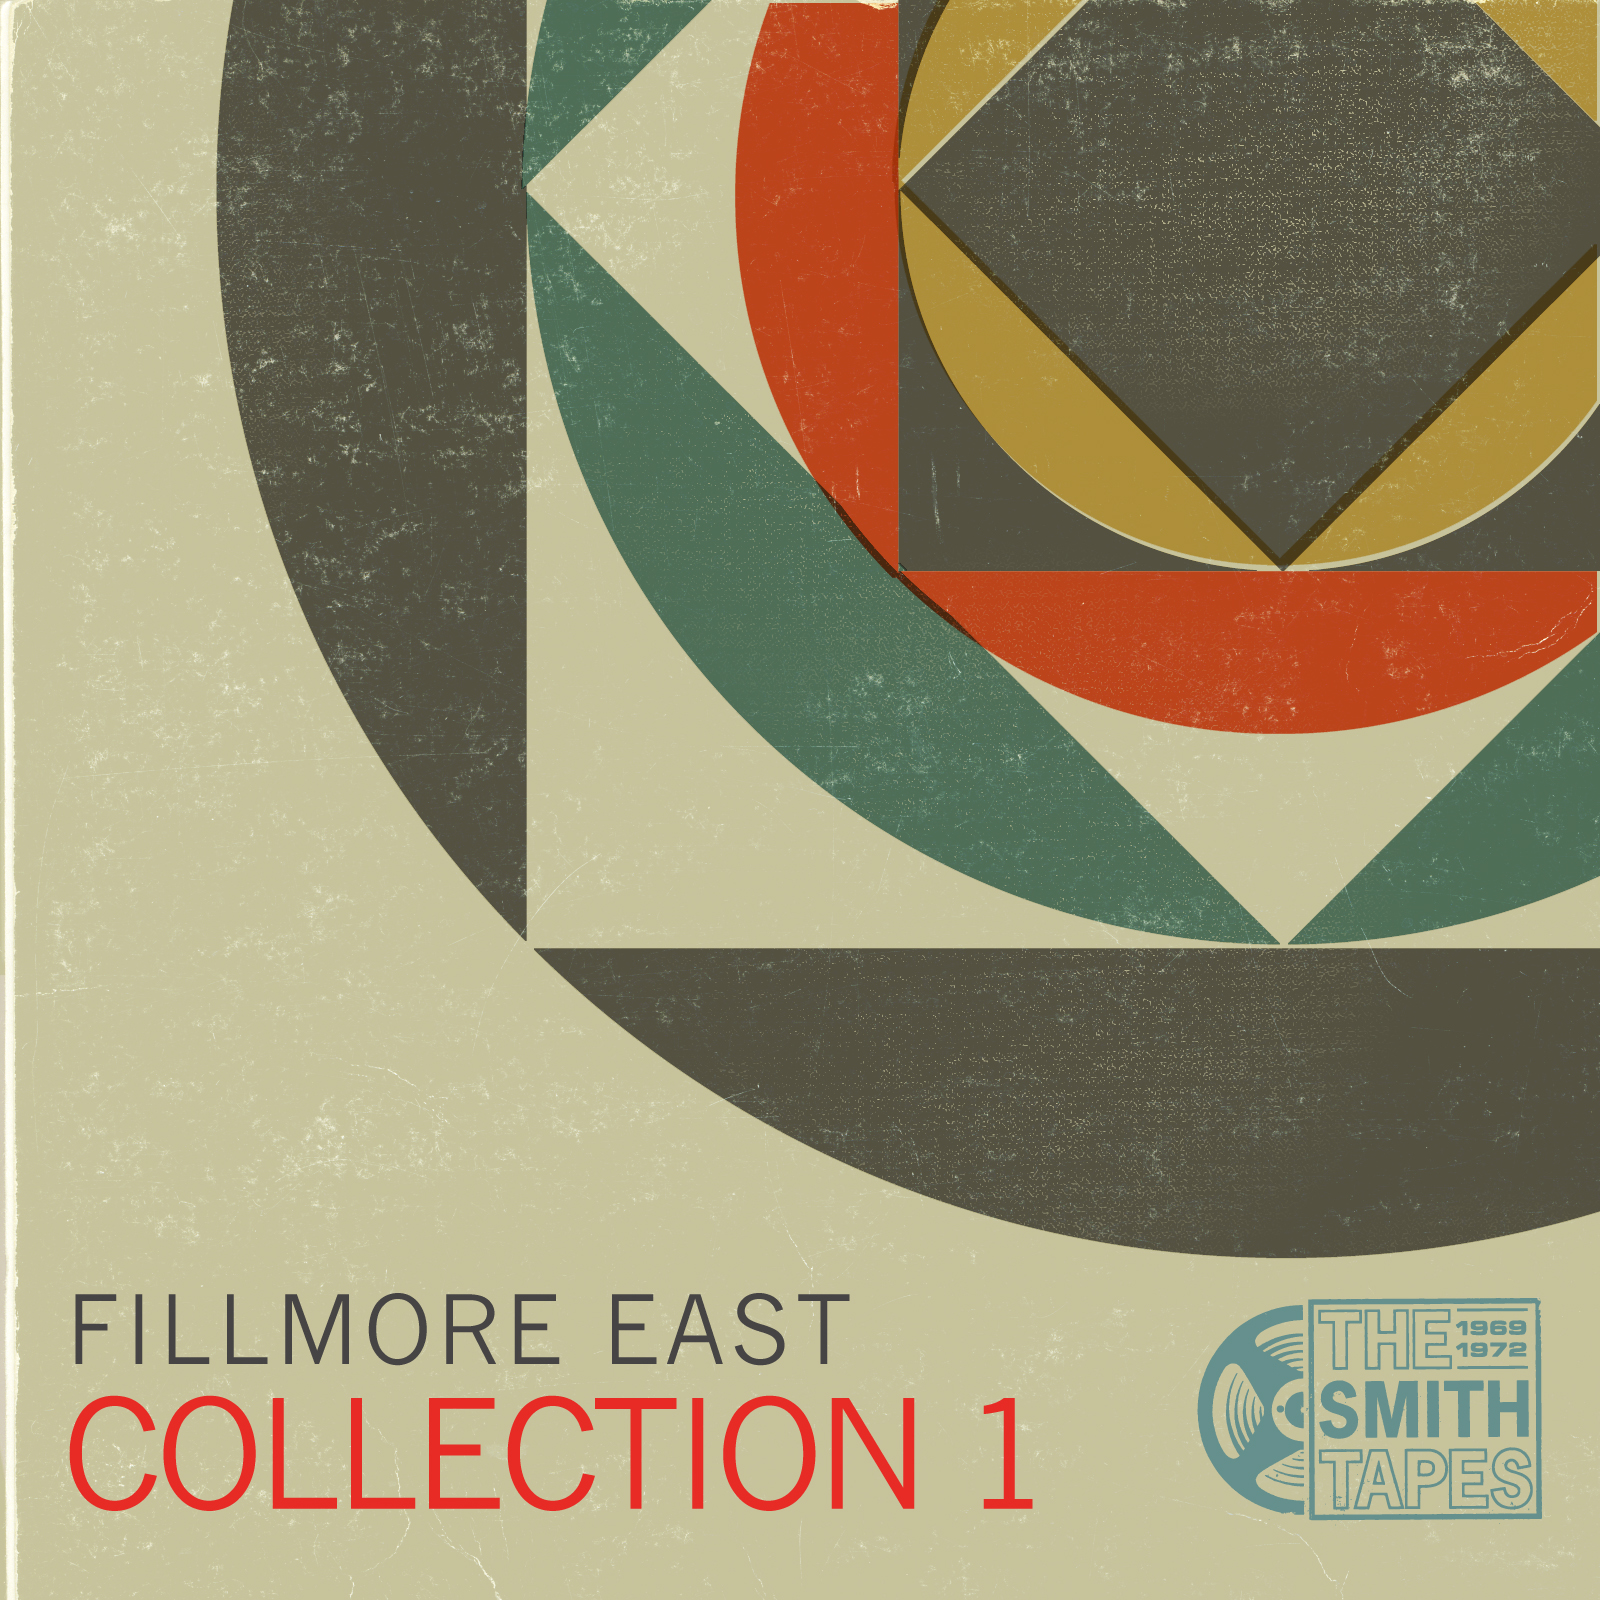 Collection 1 on iTunes!